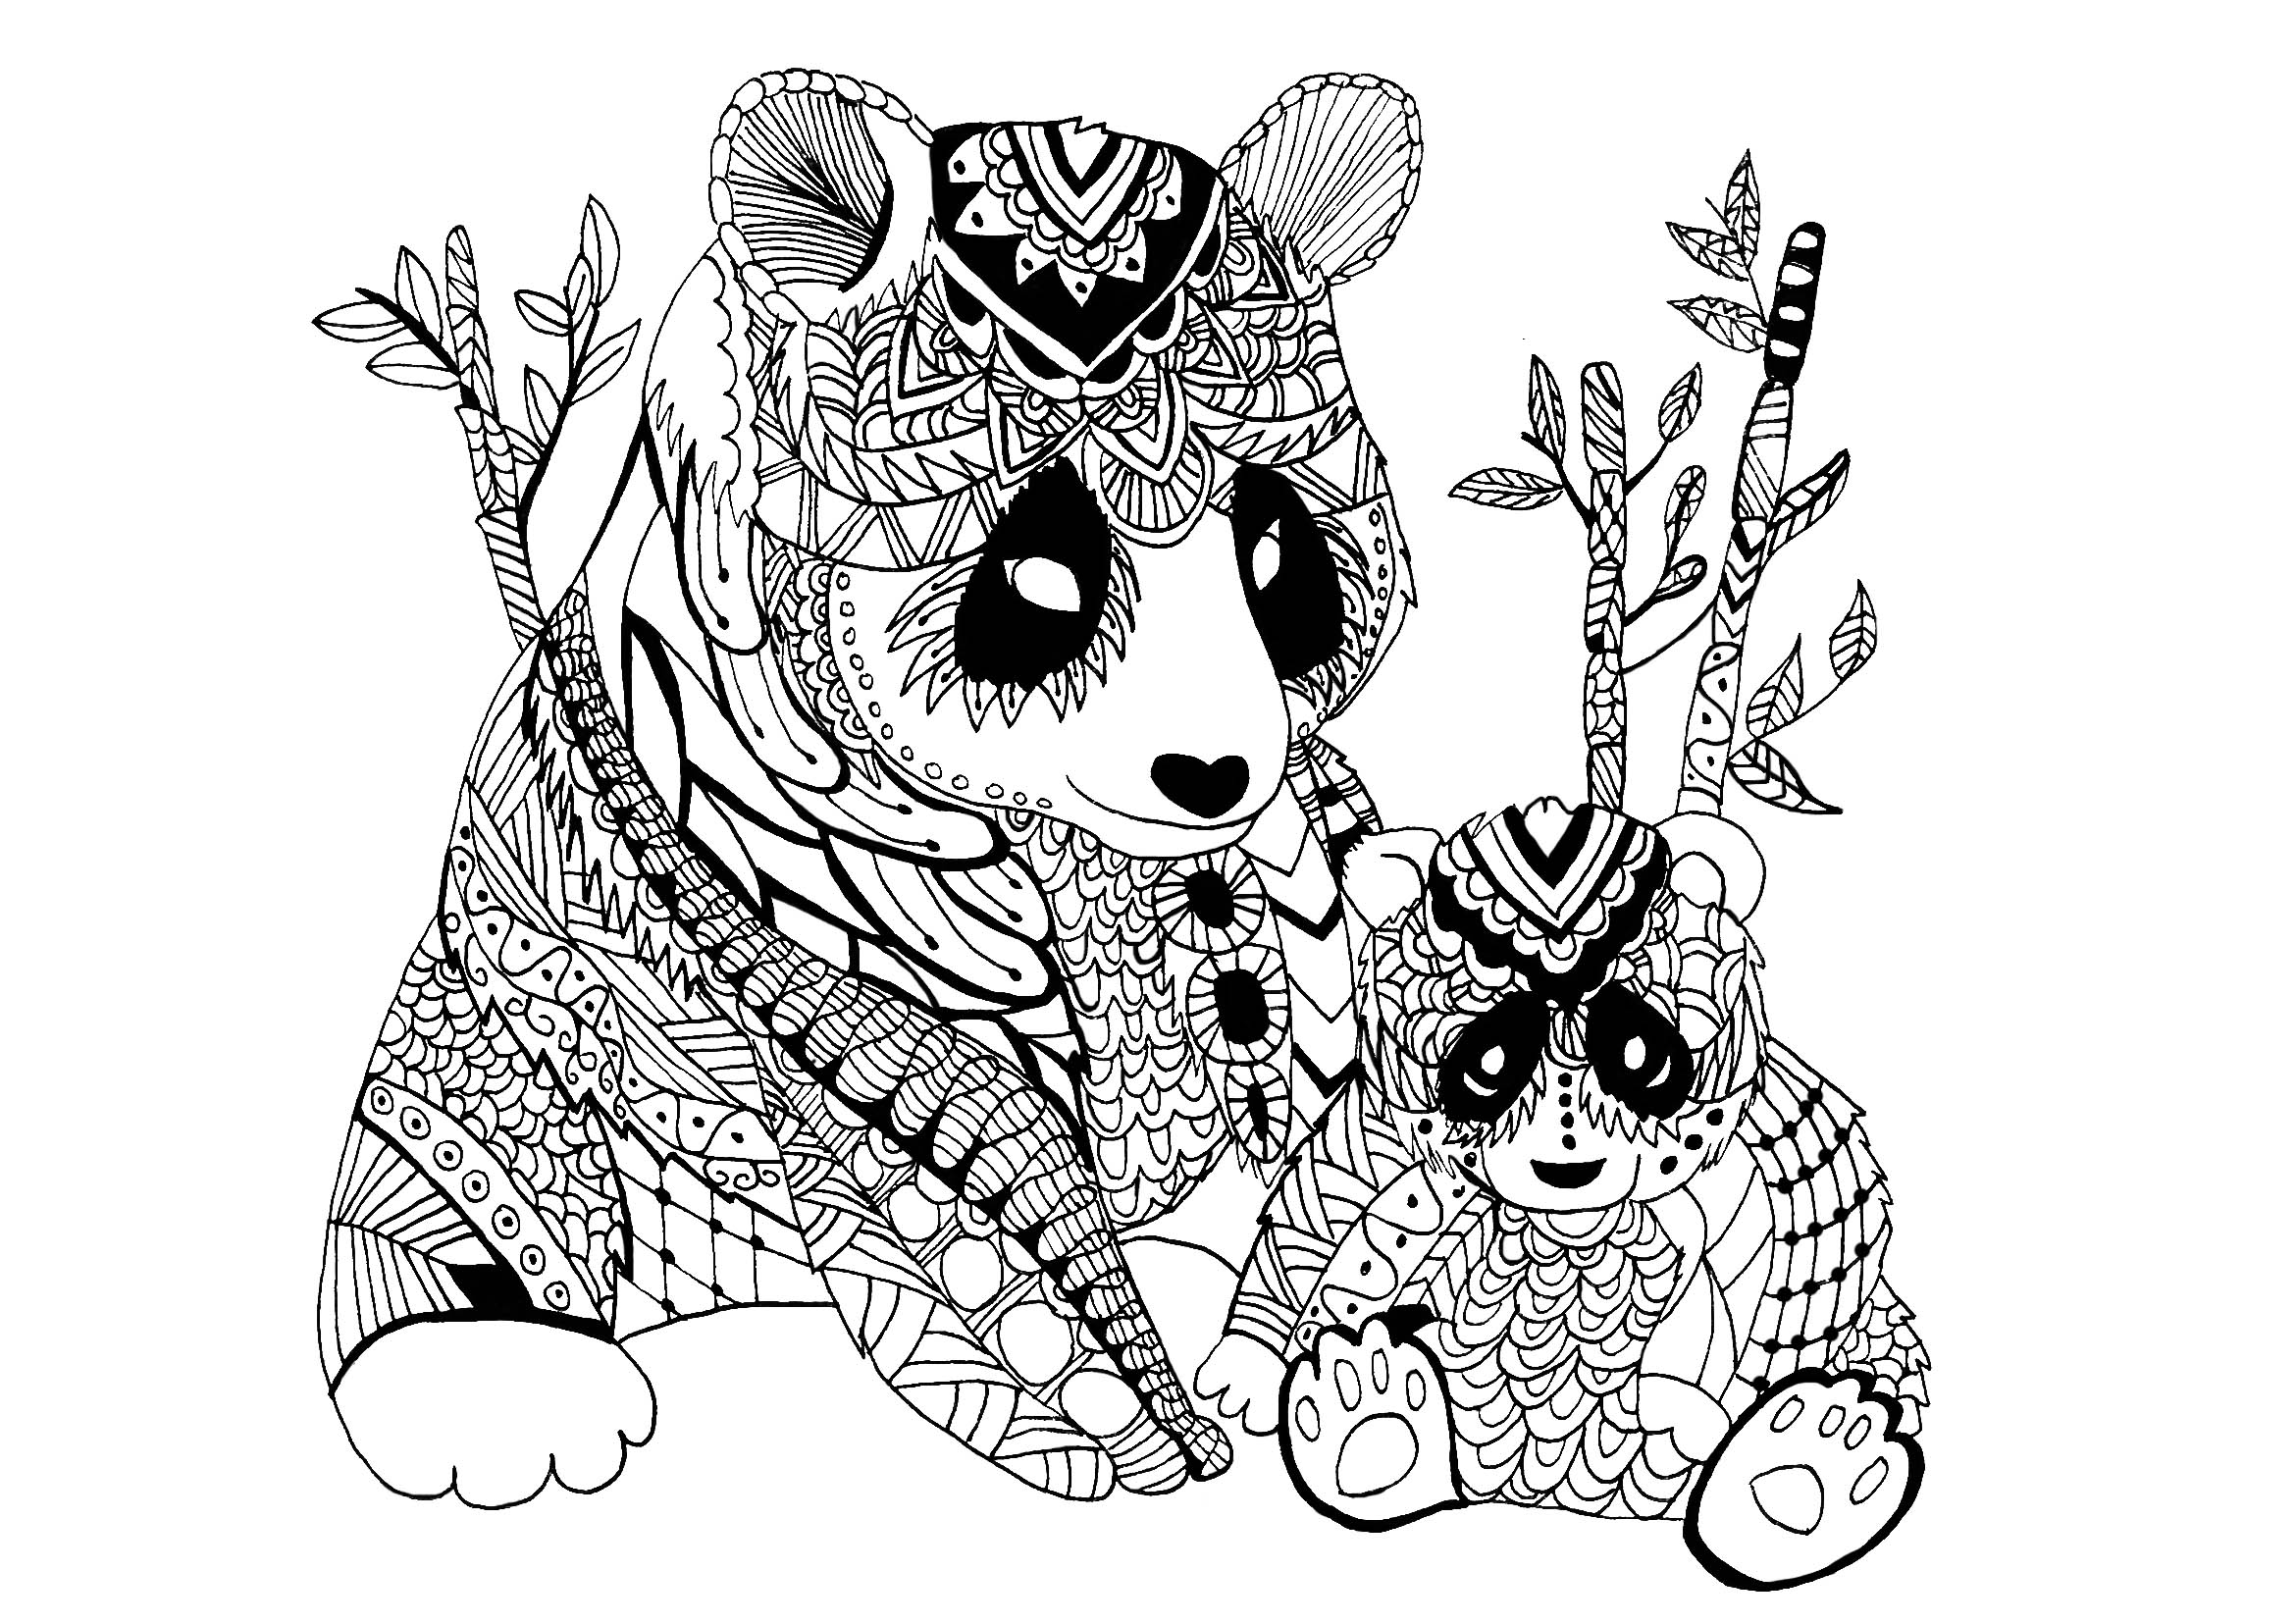 kids art coloring pages doodle art to color for children doodle art kids art coloring kids pages